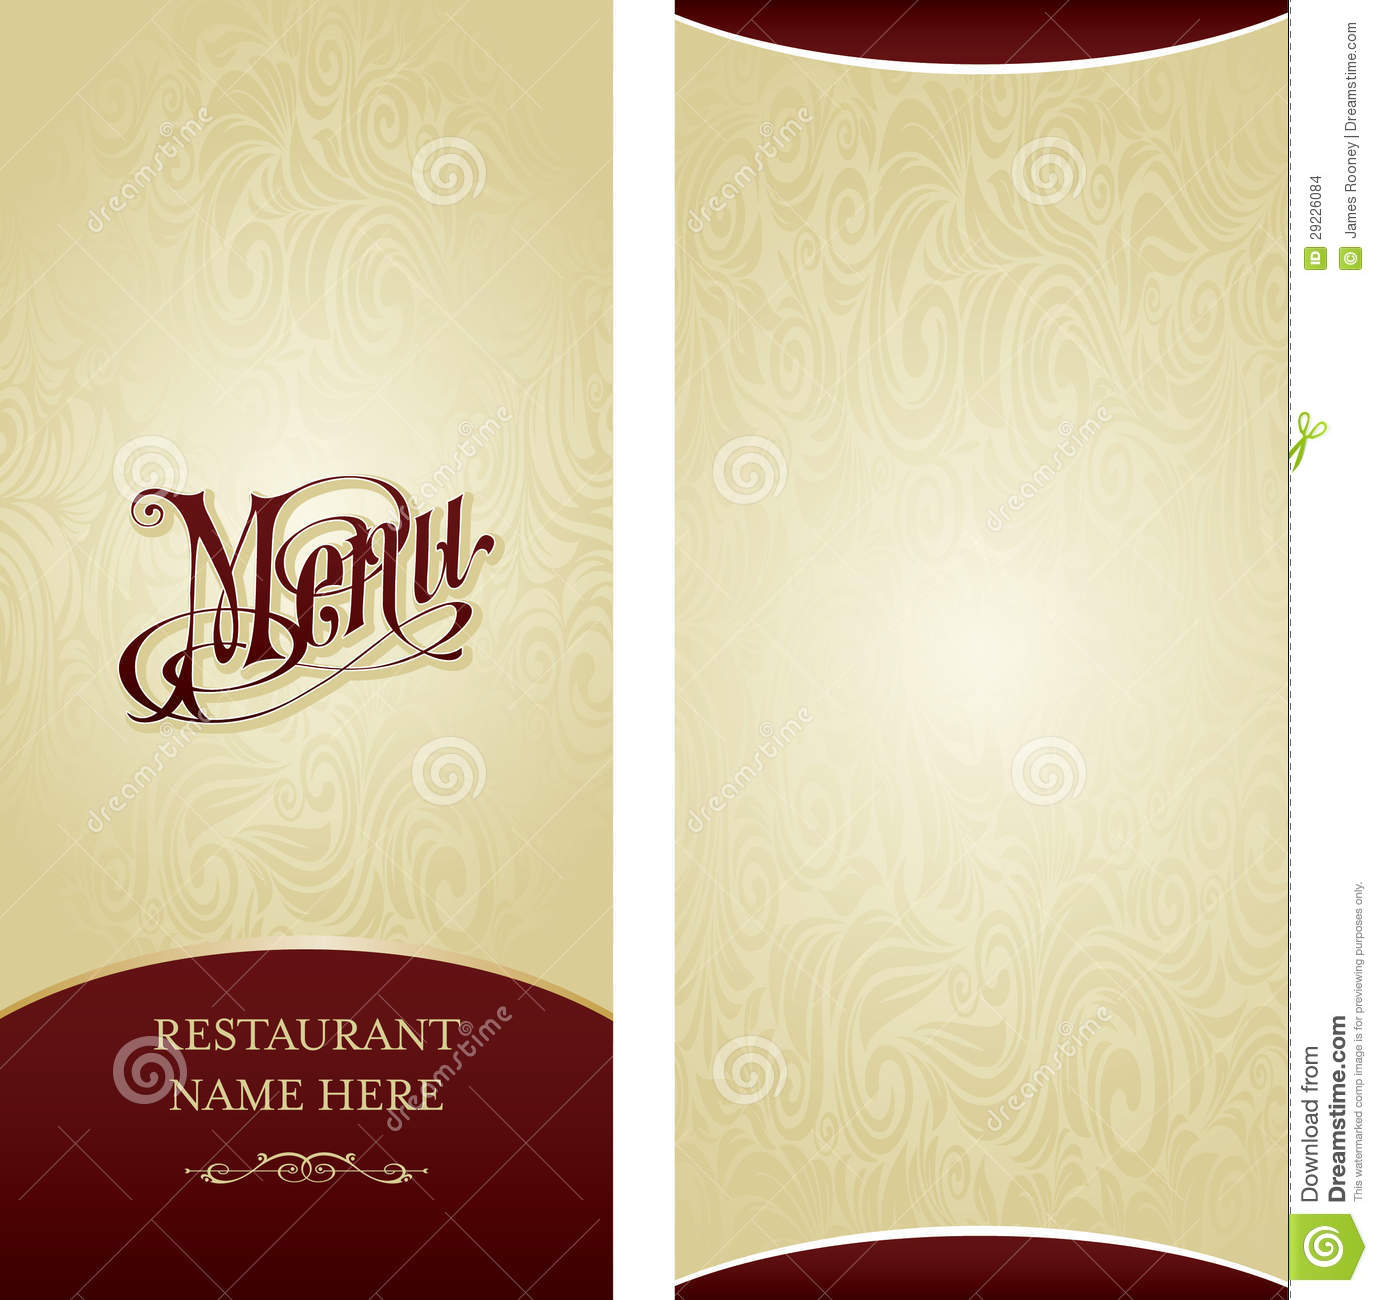 Menu design template stock illustration illustration of for Cafe menu design template free download